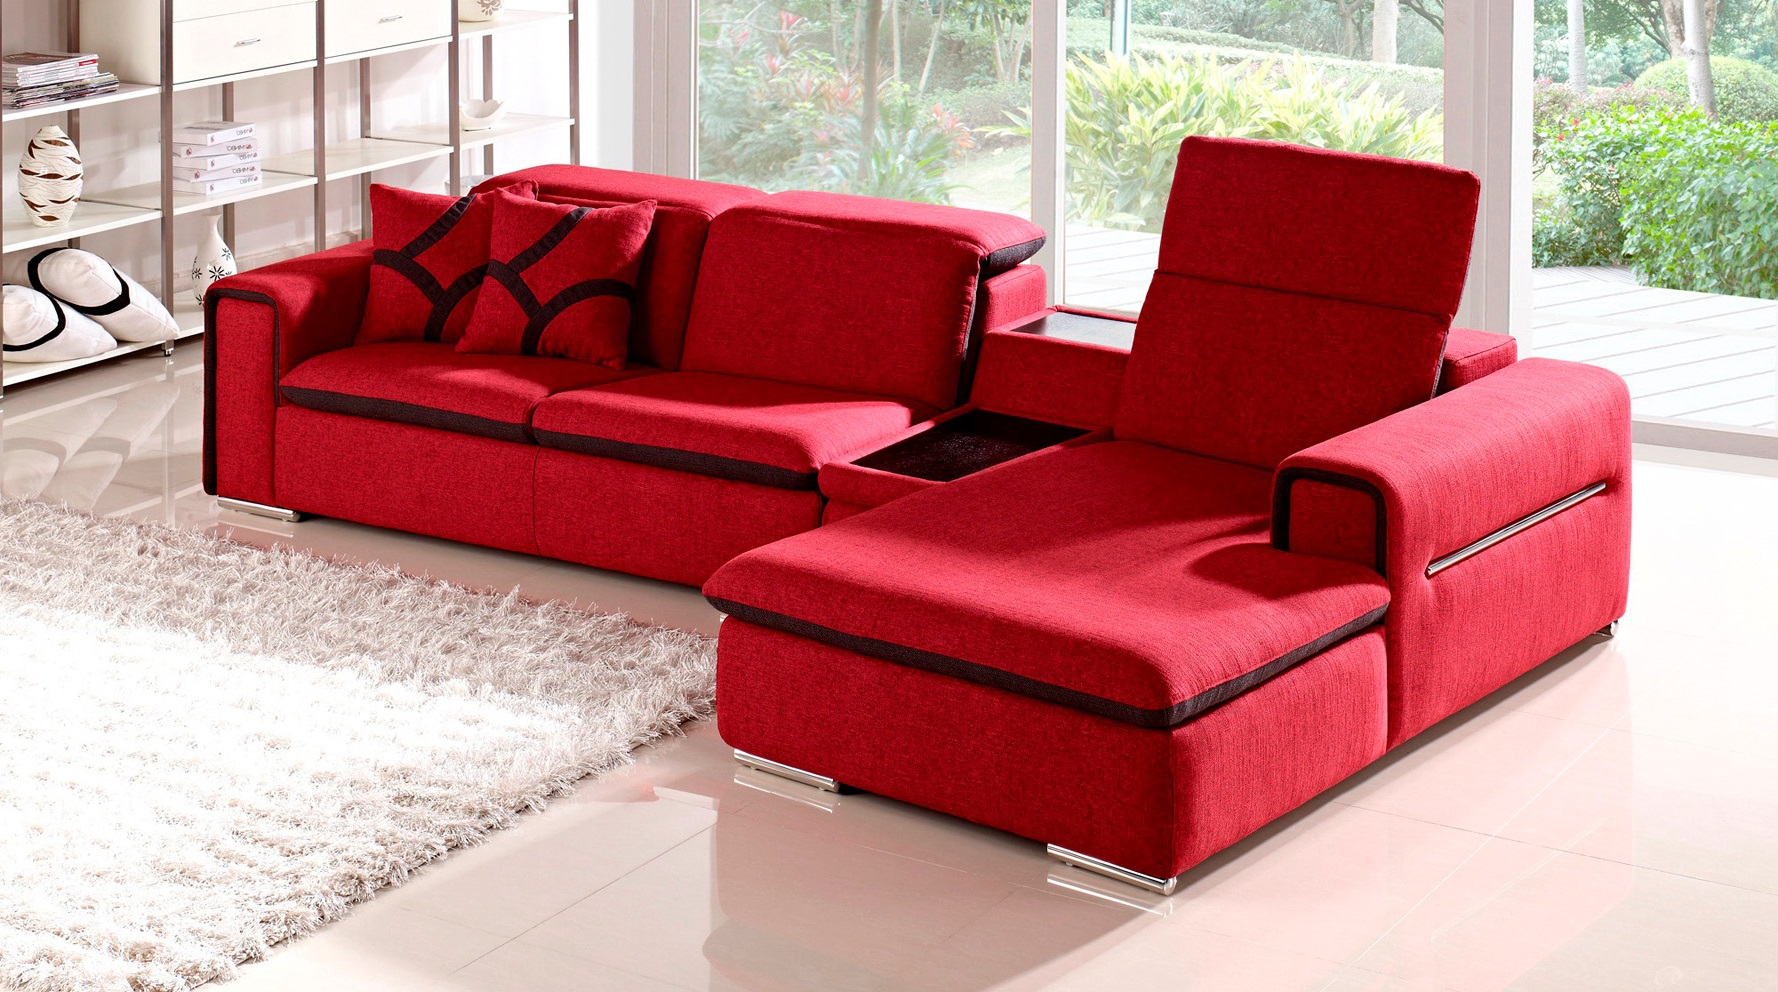 Red Indigo Fabric Sectional Sofa With Table And Storage